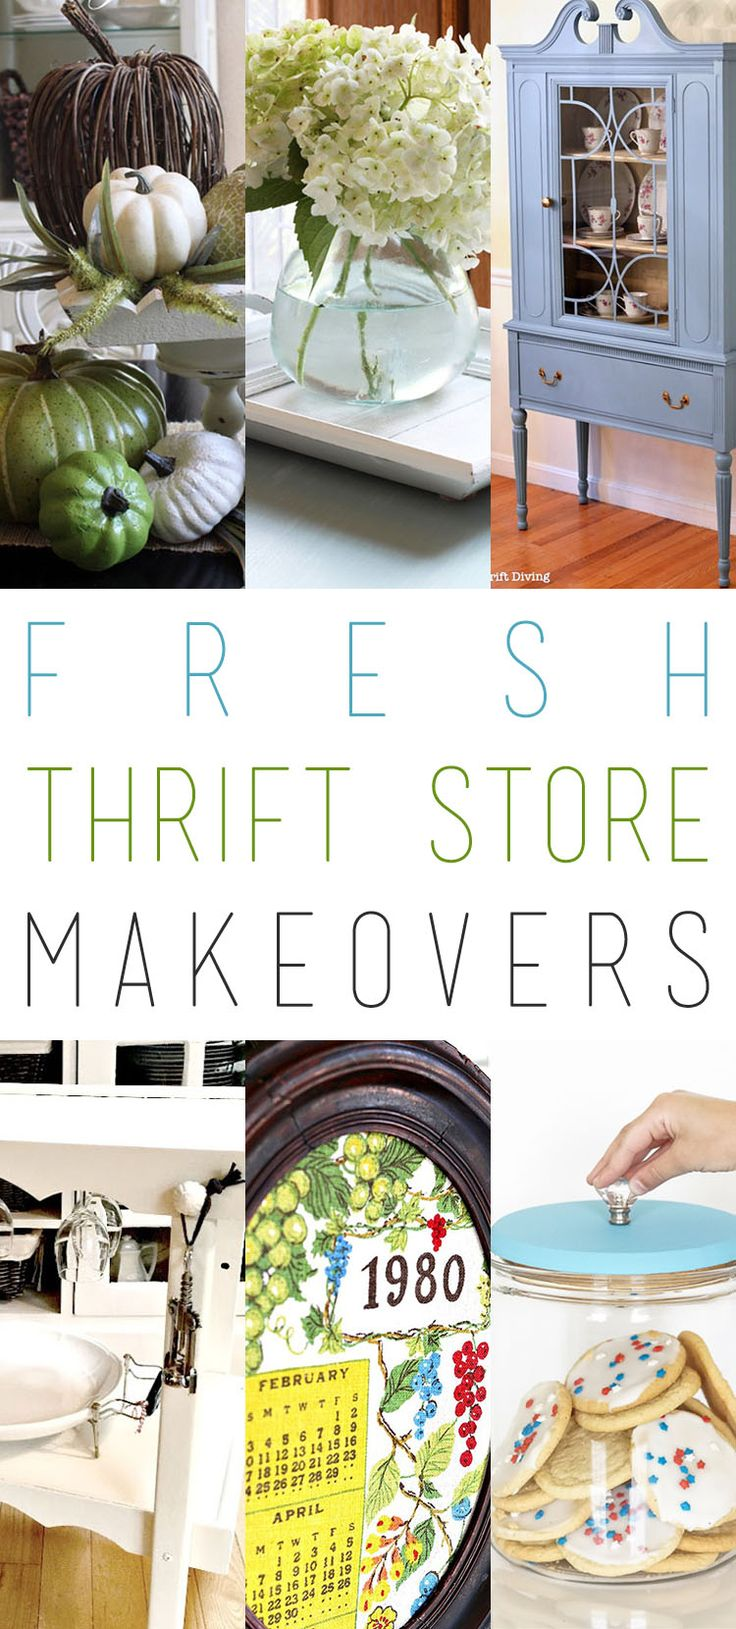 446 best Thrift Store Makeovers images on Pinterest | Dollar stores ...